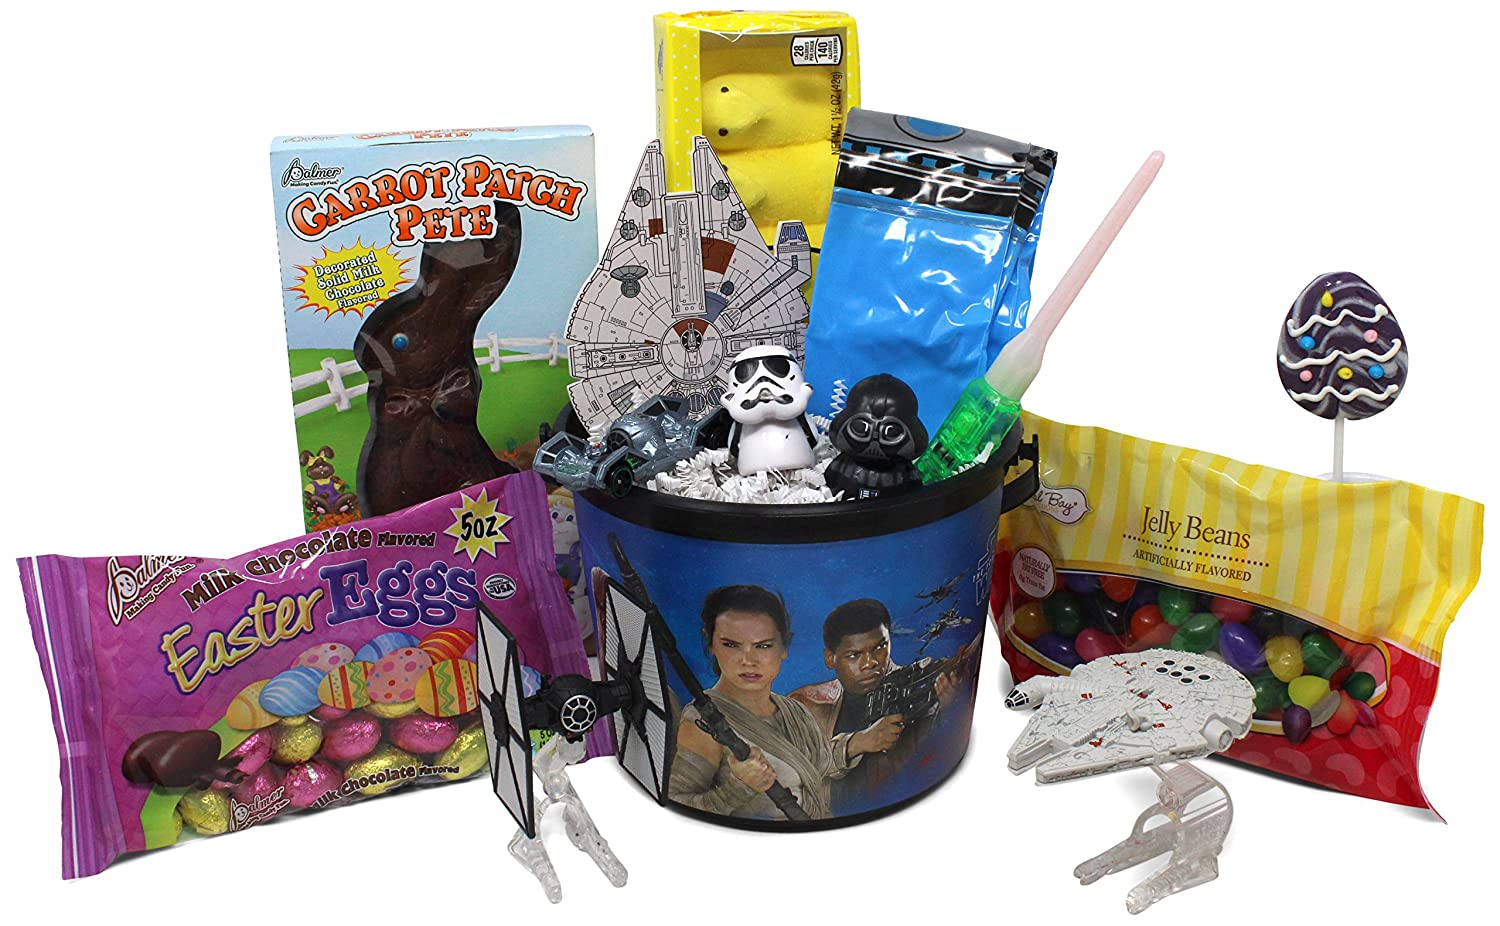 Amazon star wars easter basket great for little boys and amazon star wars easter basket great for little boys and girls pre filled with stuffers chocolate candy treats and toys perfect for kids of negle Choice Image